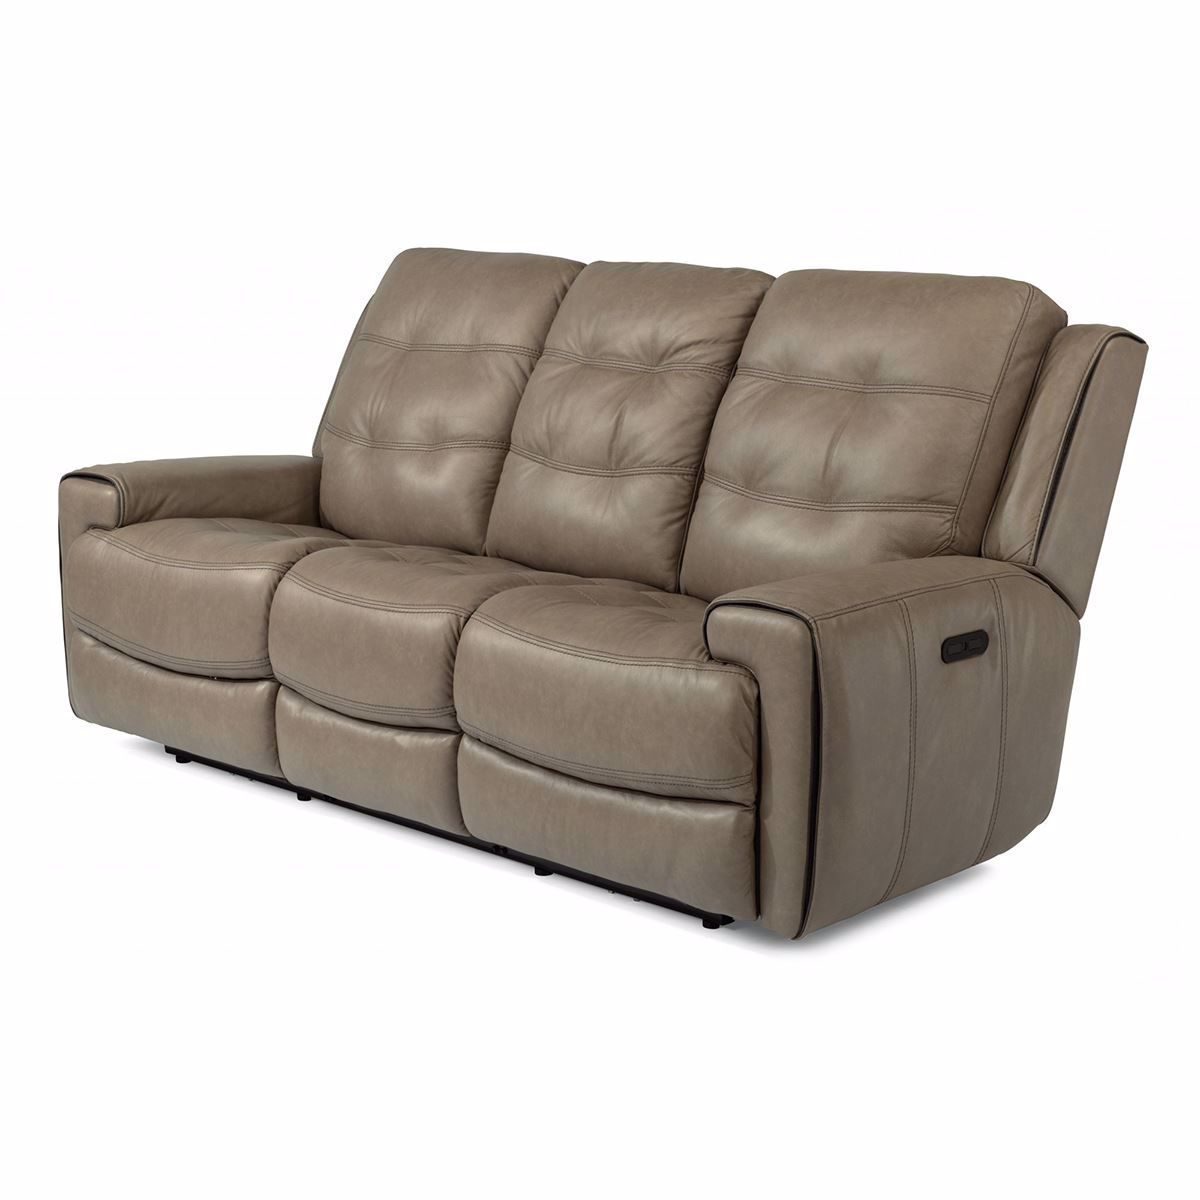 Well Known Wicklow Power Reclining Leather Sofa With Power Headrest Throughout Charleston Power Reclining Sofas (View 2 of 20)